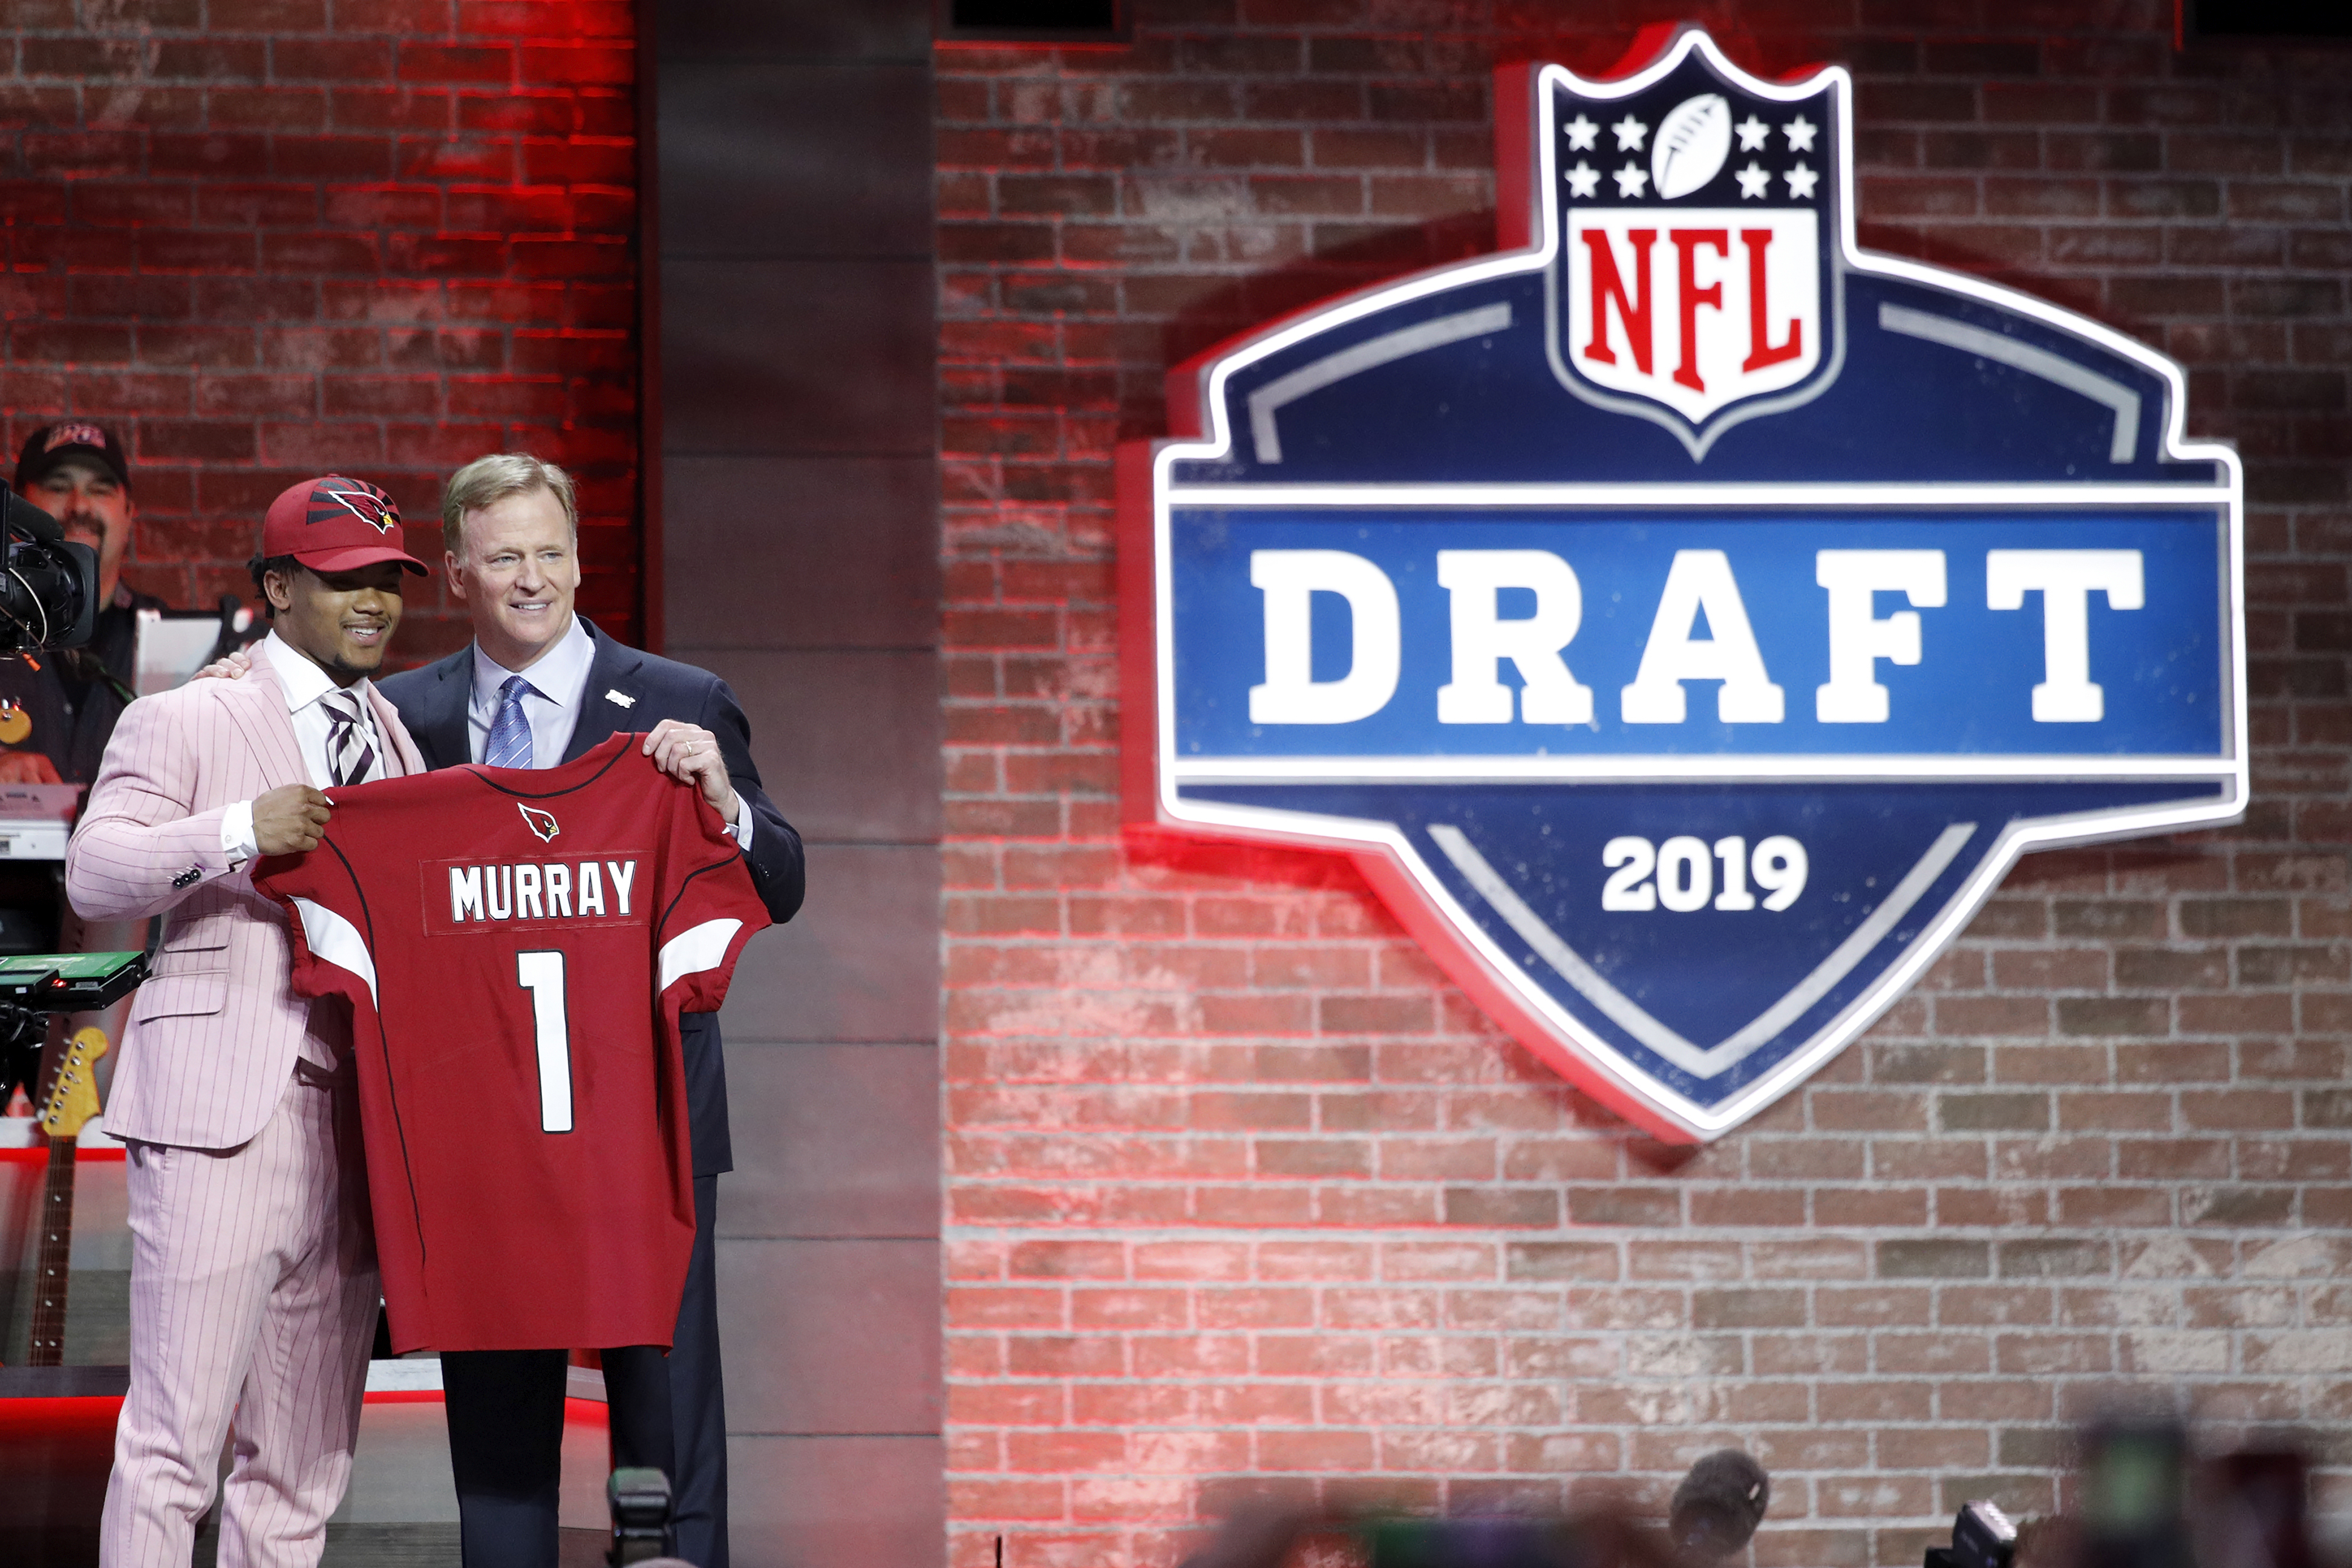 Former Oklahoma Sooners QB Kyler Murray poses with NFL Commissioner Roger Goodell after being drafted by the Arizona Cardinals with the first pick of the 2019 NFL Draft, Apr. 25, 2019.